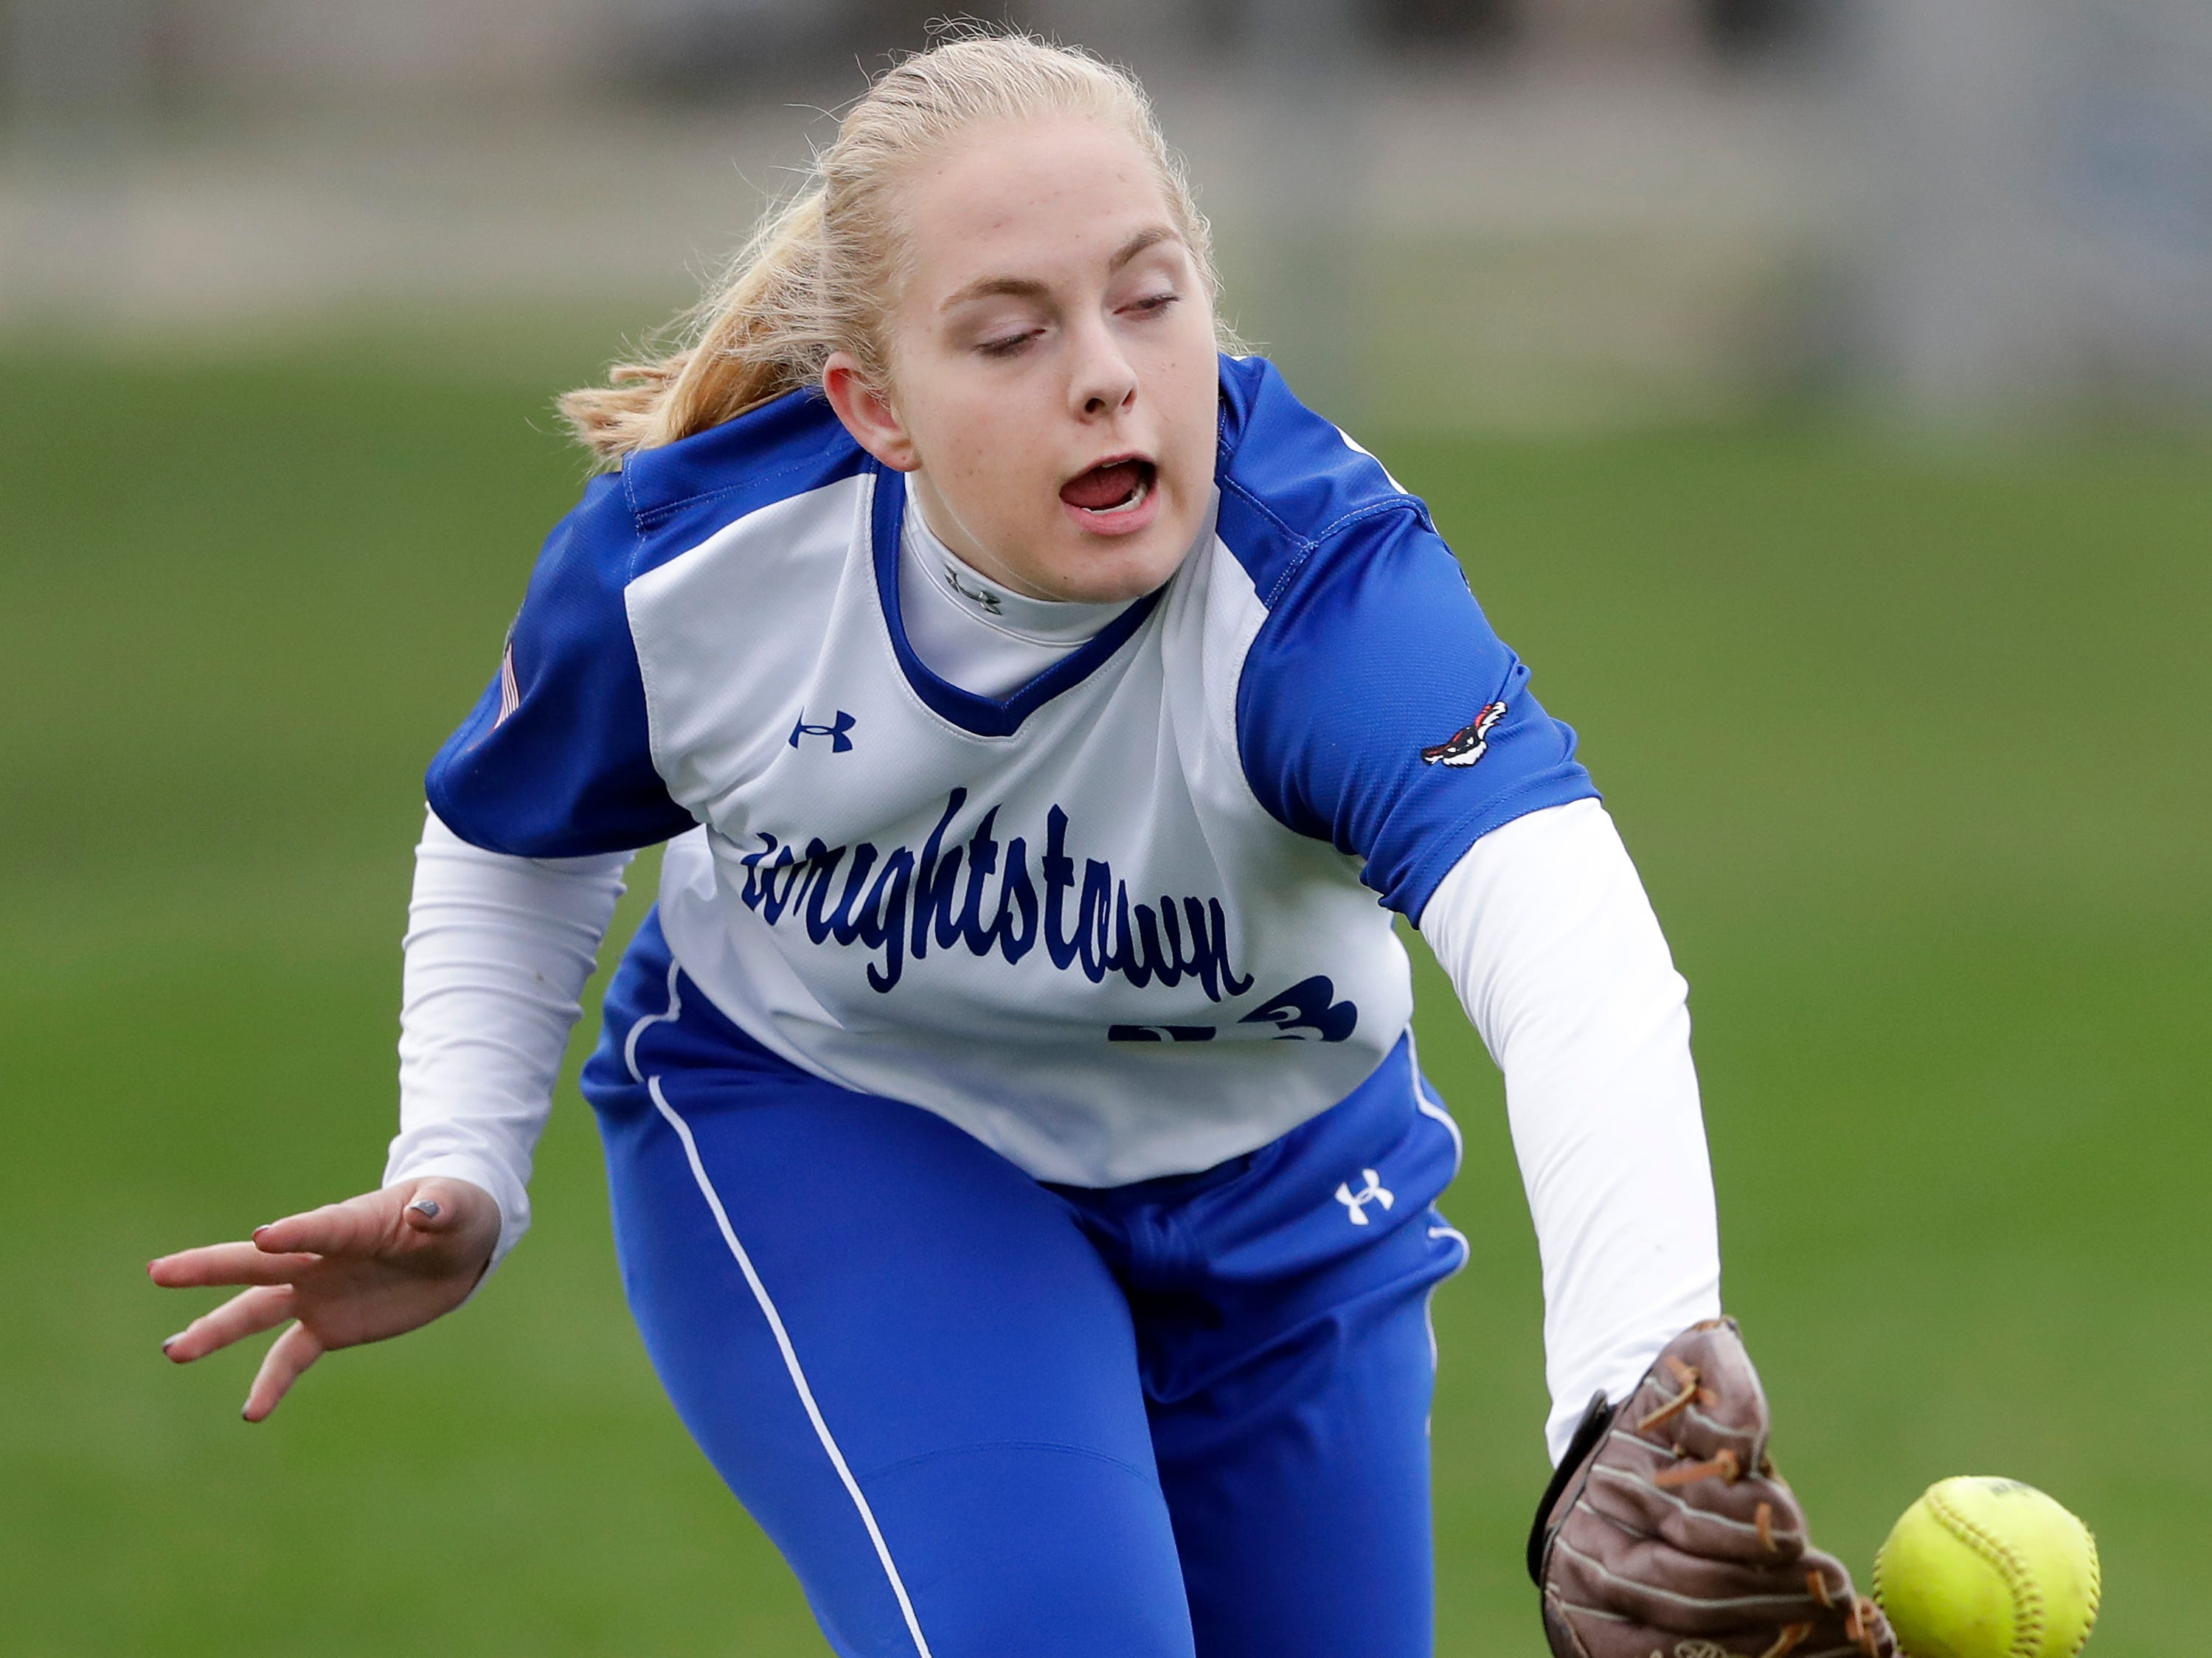 Wrightstown High School's #33 Taylor De Cleene against Little Chute High School during their softball game on Friday, May 3, 2019, in Little Chute, Wis. Little Chute defeated Wrightstown 6 to 1.Wm. Glasheen/USA TODAY NETWORK-Wisconsin.